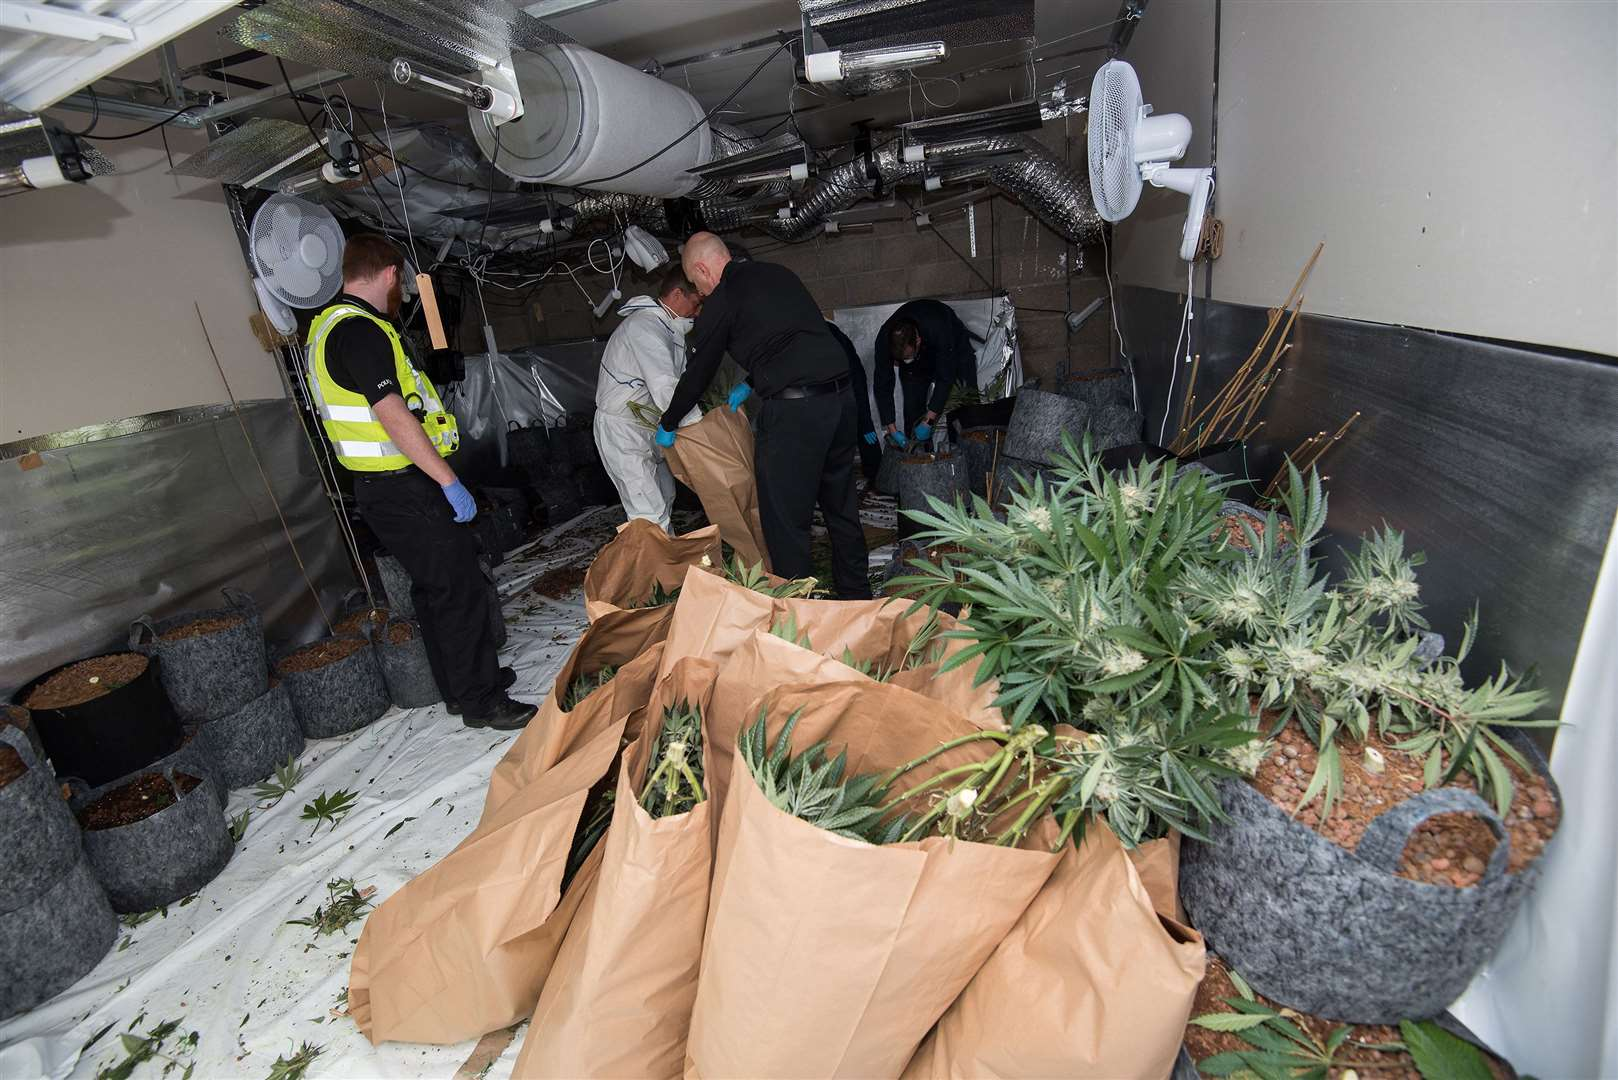 Armed police raided a house just outside Newmarket, seizing hundreds of cannabis plants. Earlier today Cambridgeshire Police entered the property in Fordham Road and found about £350,000 worth of cannabis plants. Picture by Mark Westley